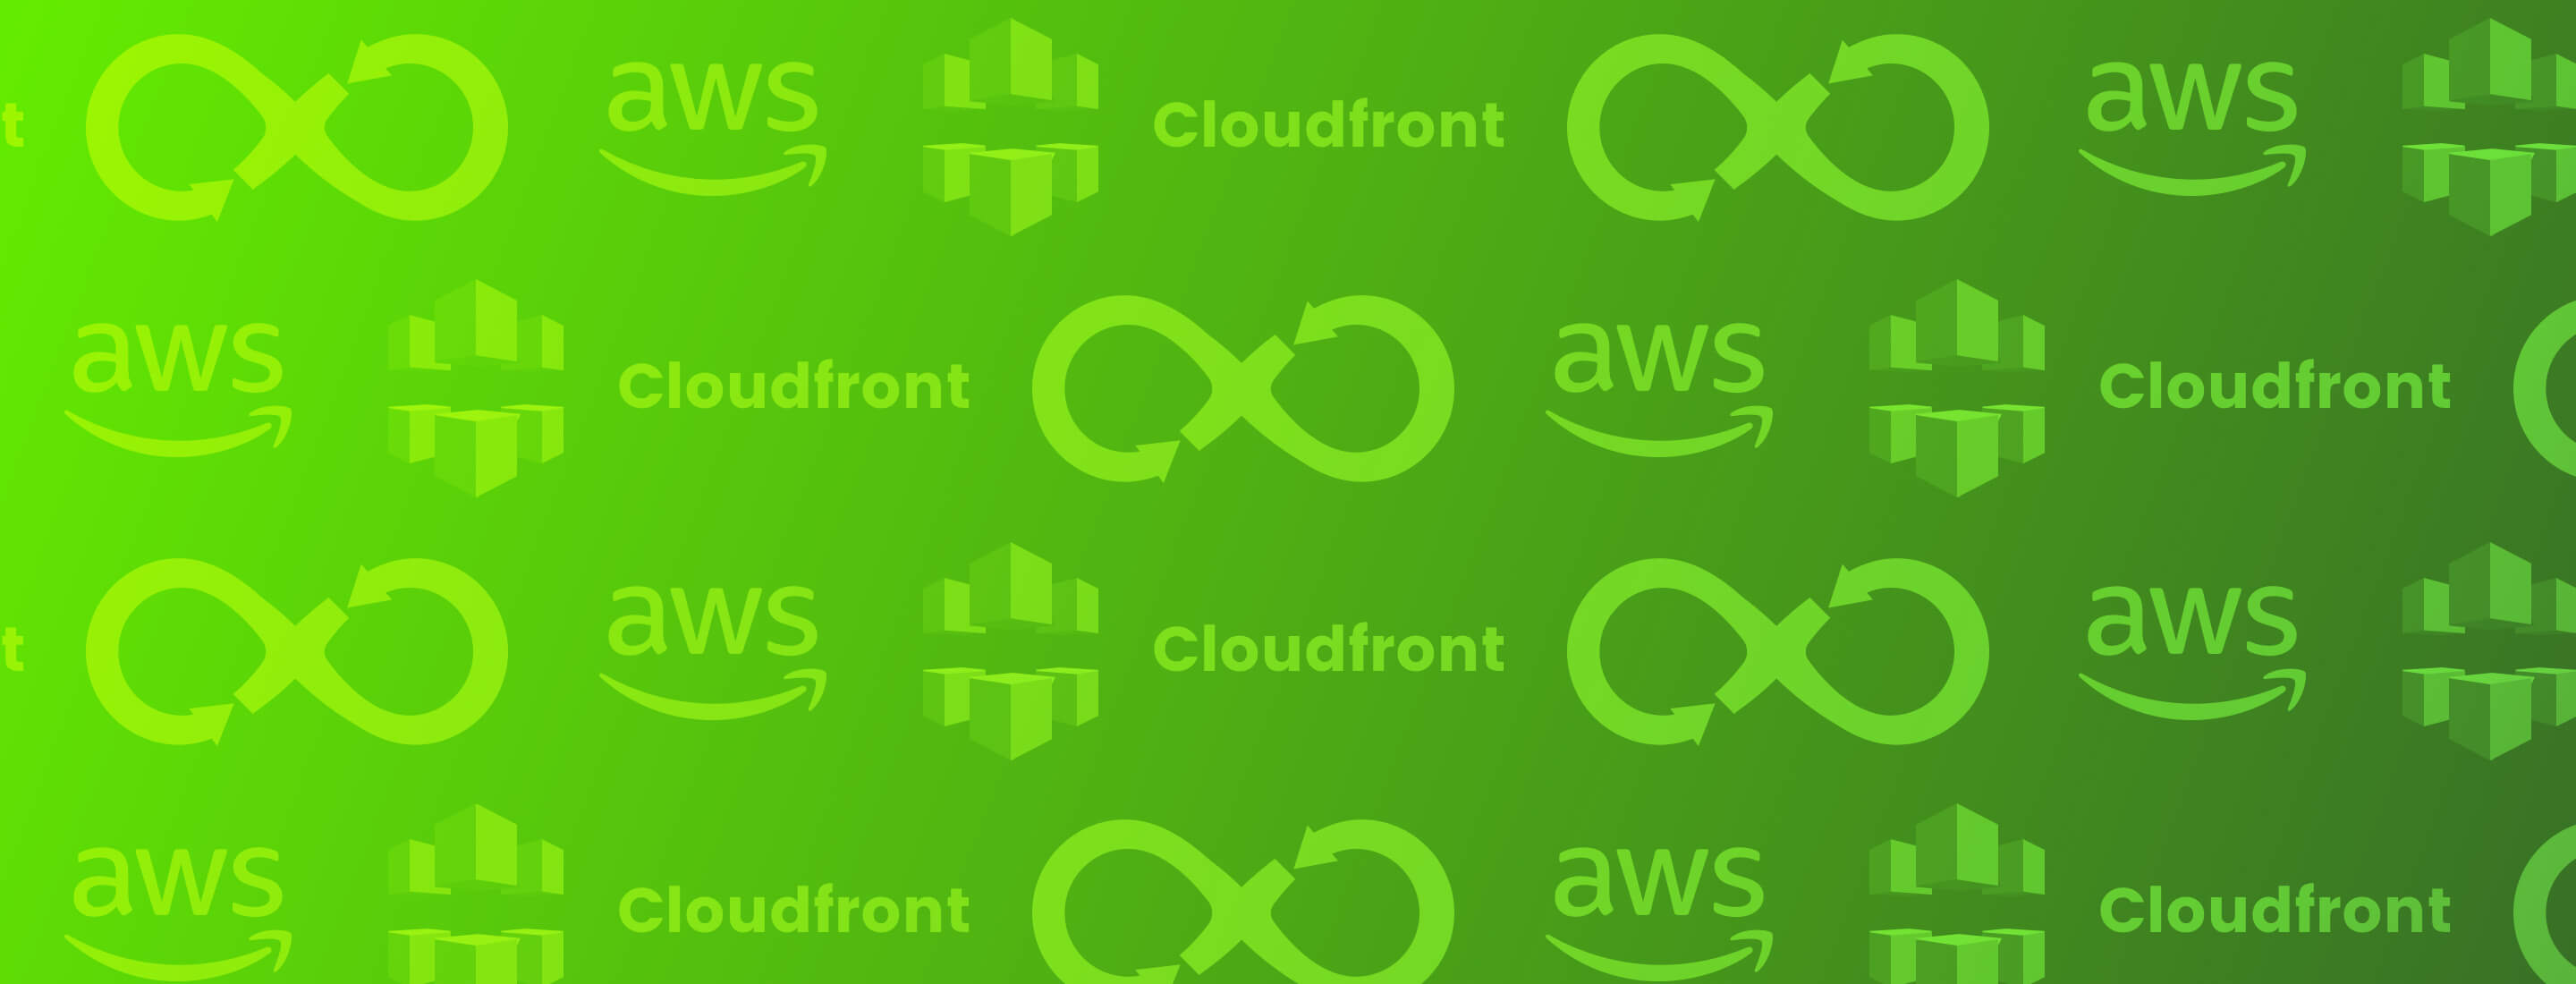 Custom Error Pages in AWS Cloudfront